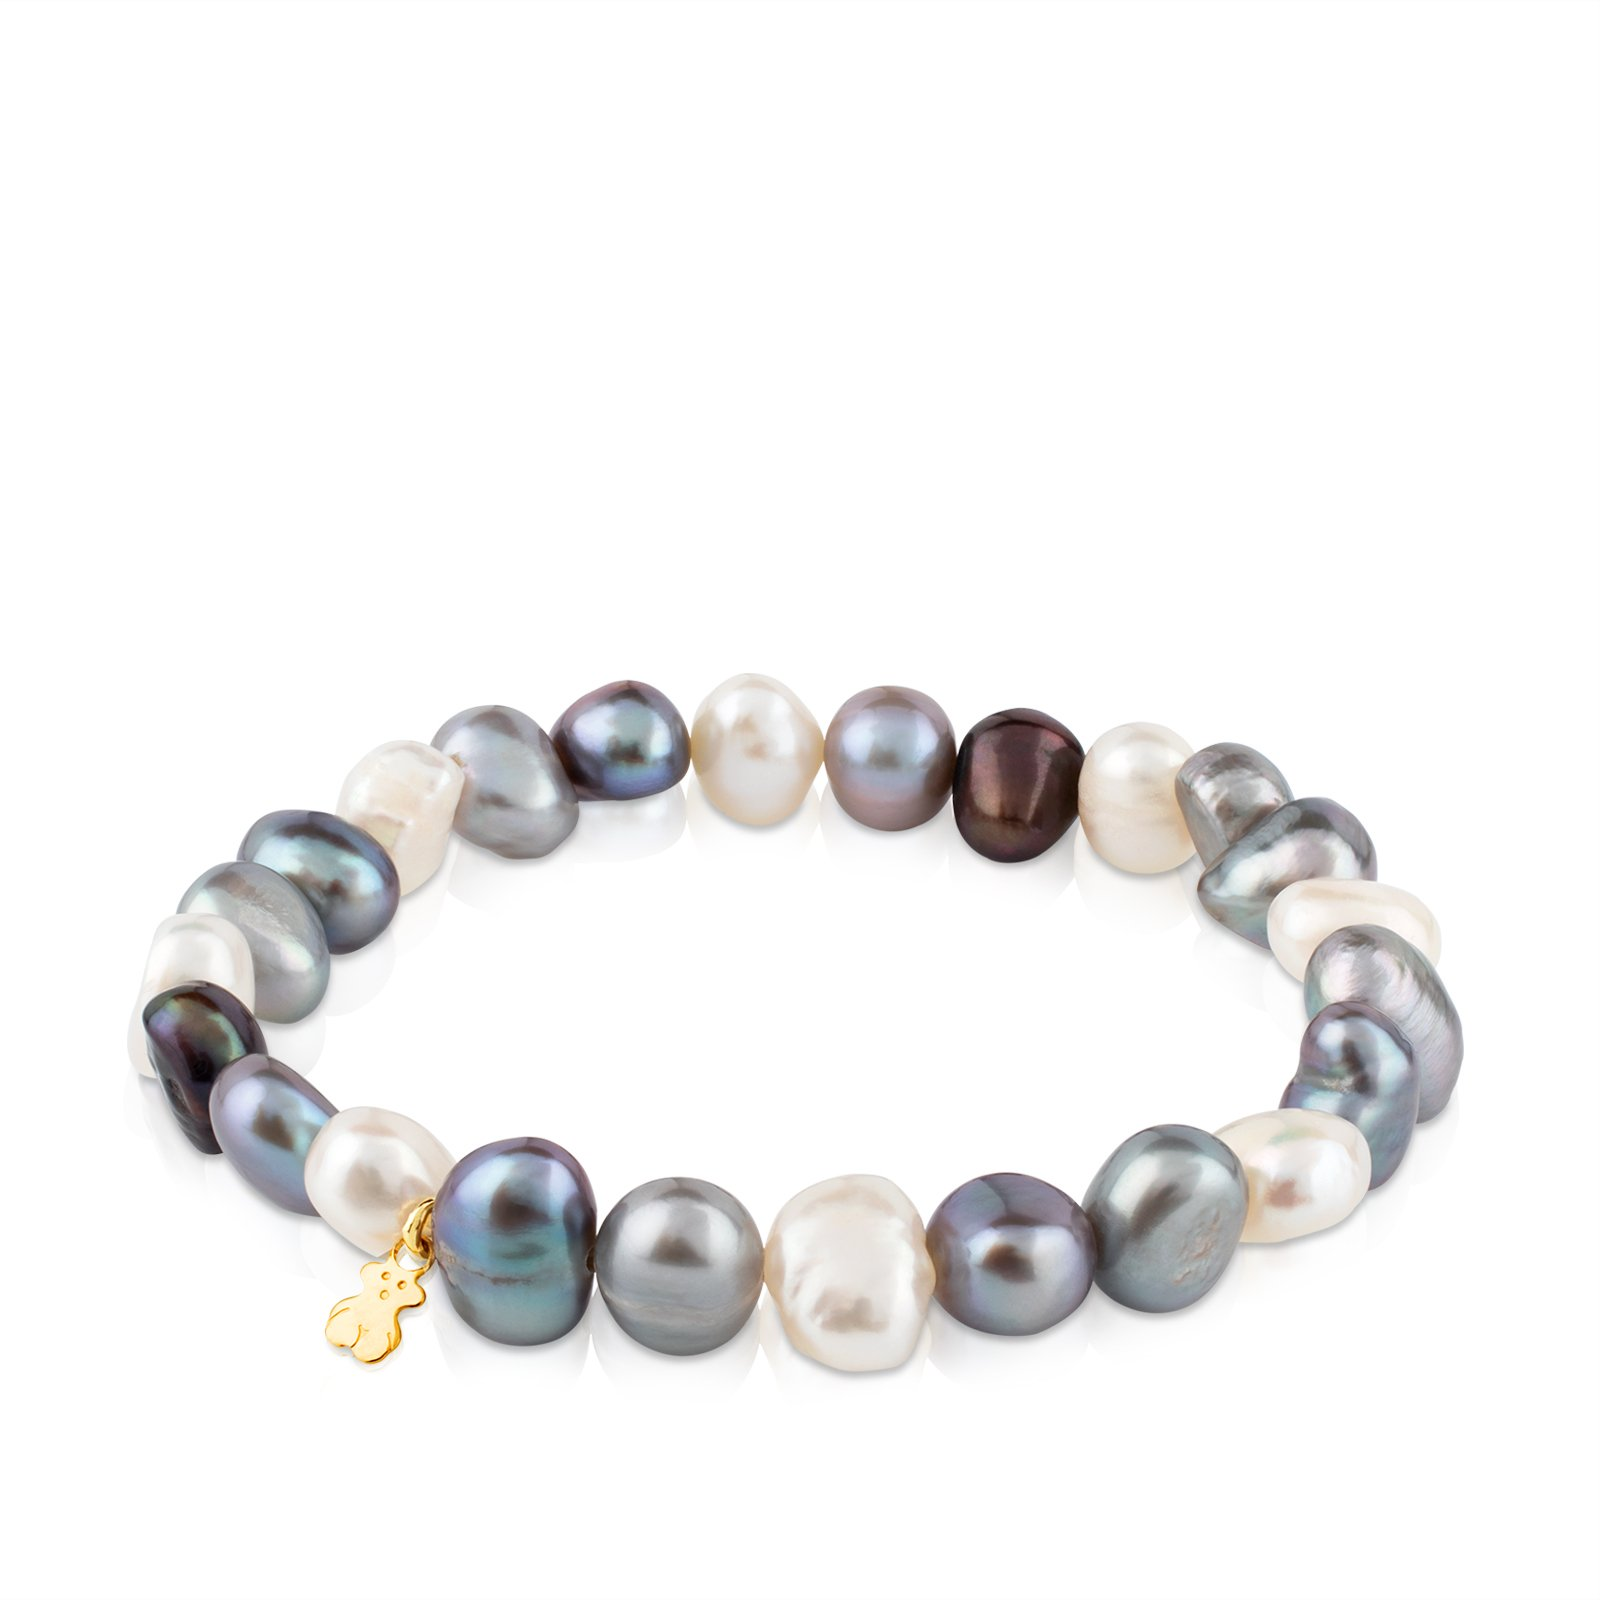 TOUS Sweet Dolls 18k Yellow Gold Stretch Bracelet with Multicolor Chinese Freshwater Cultured Pearl 7.0-7.5 mm